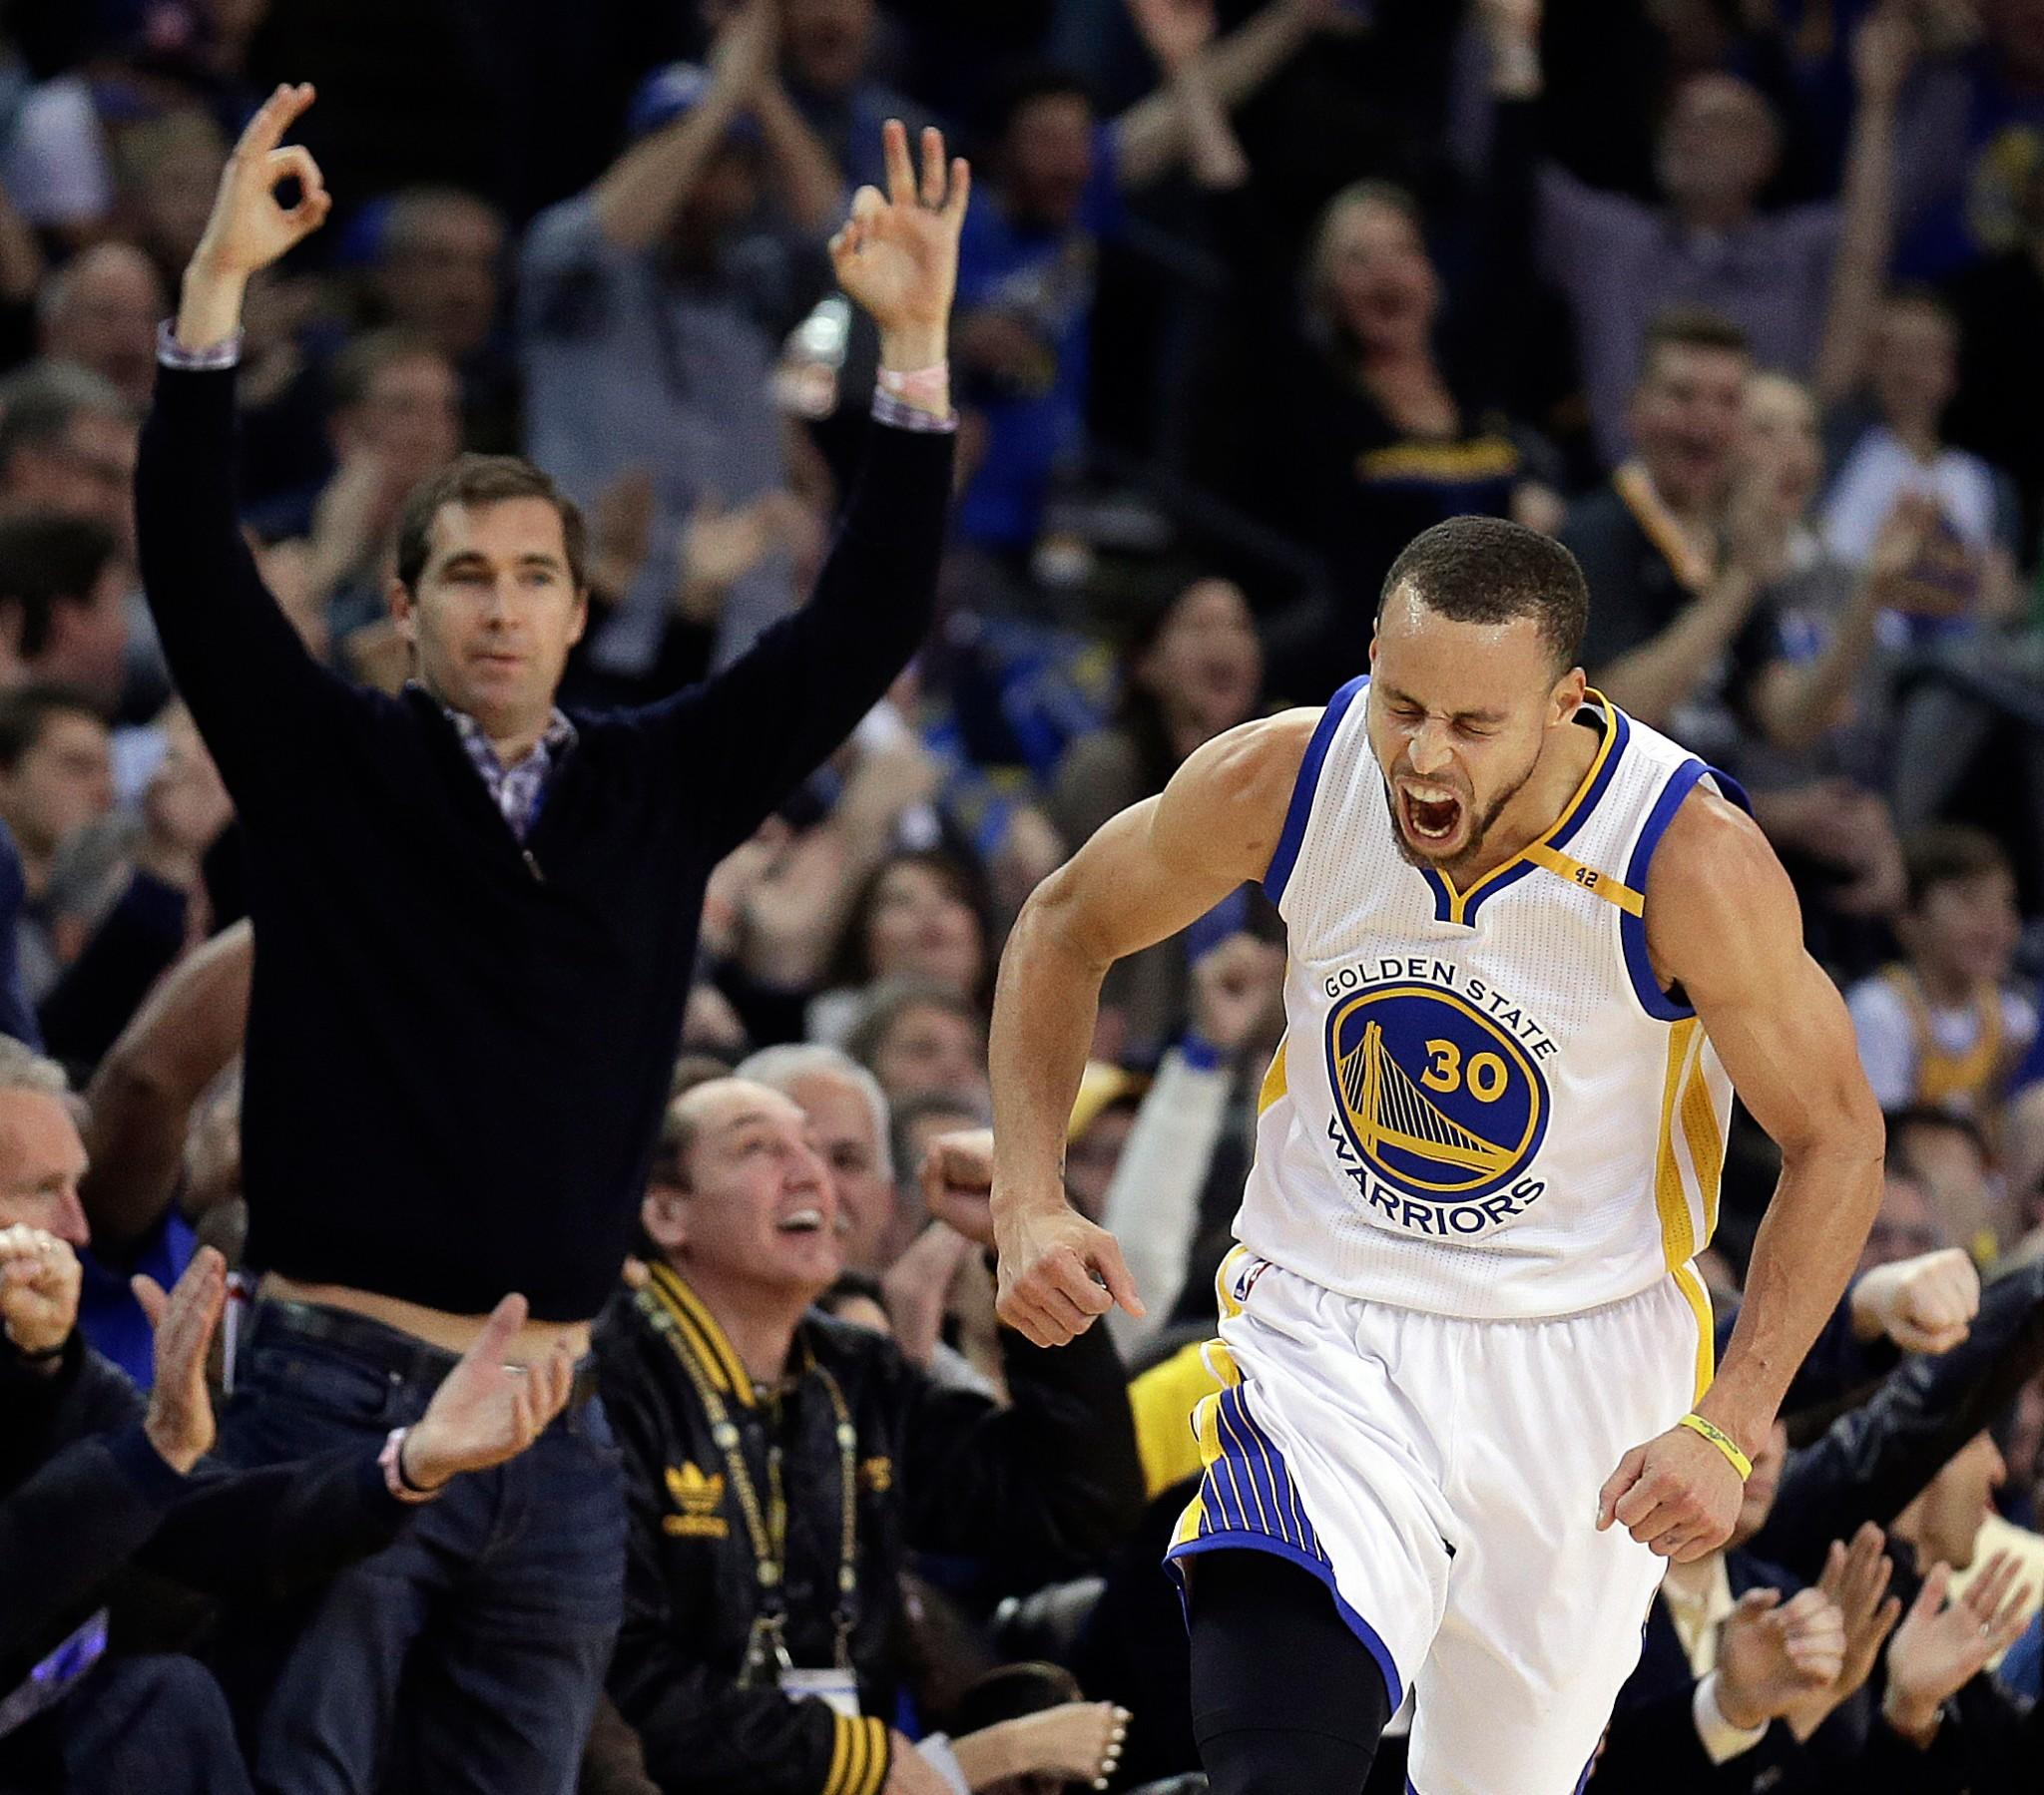 Warriors Record Without Stephen Curry 2017: The Warriors Return Serve, Annihilating The Cavs By 35 As